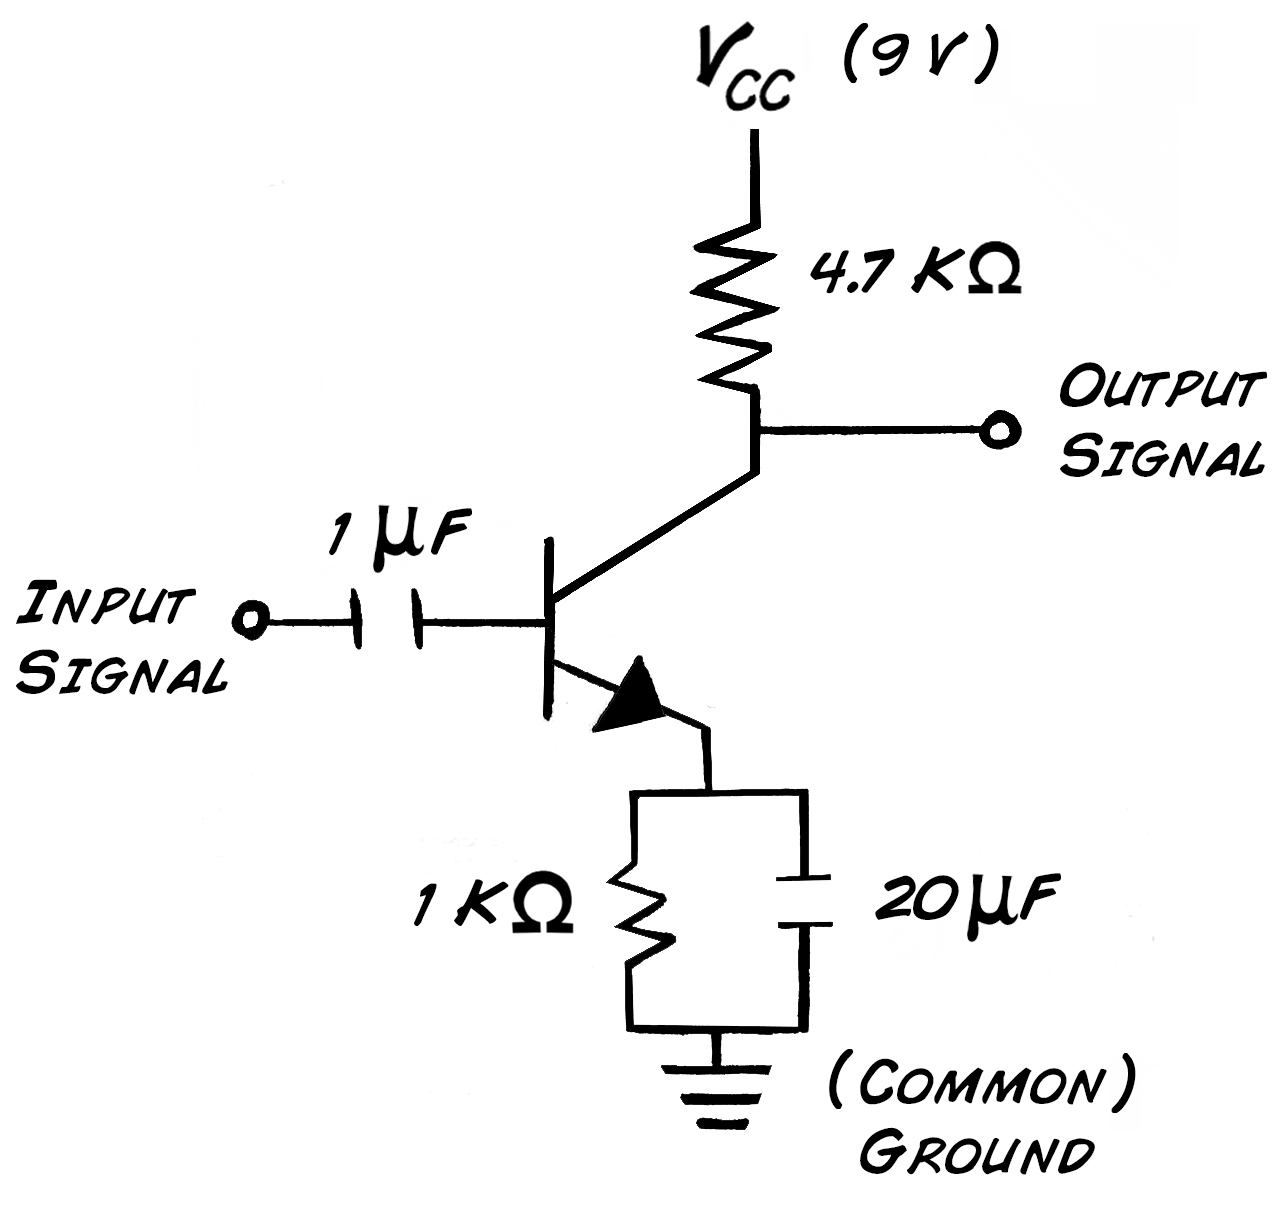 Experiment Transistor Circuit Design Of The Current Source Figure 18 Shows A Simple Example